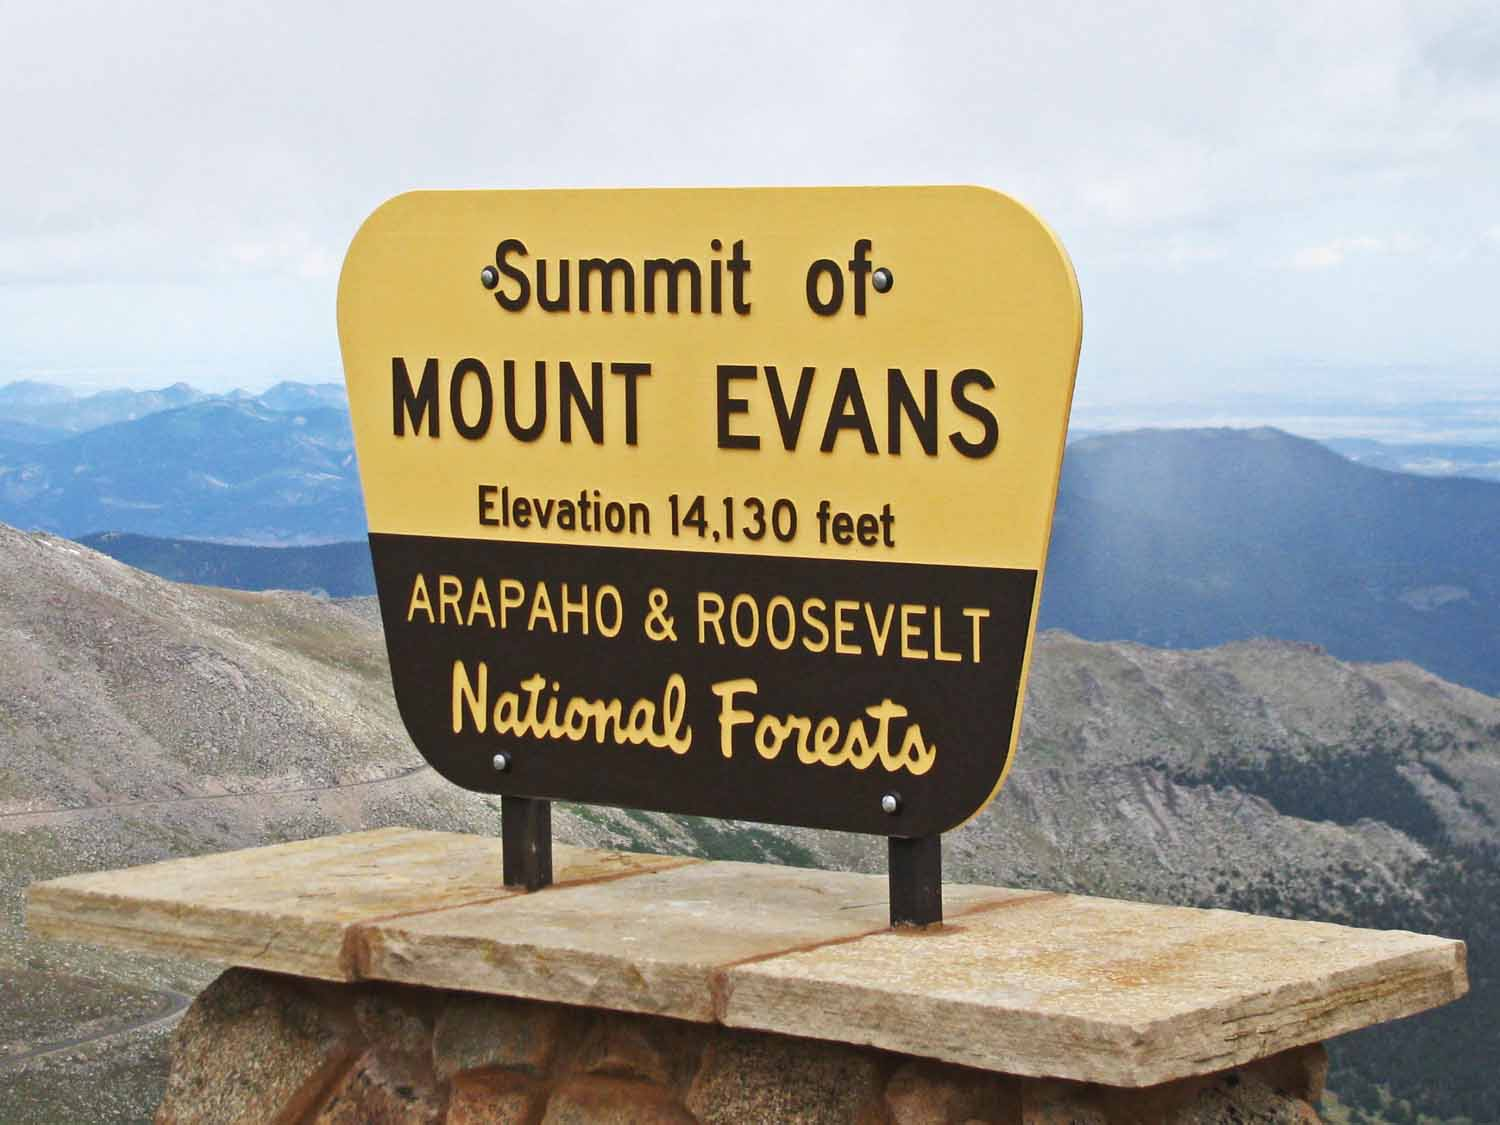 Duane and Bobbi took us to the top of Mount Evans